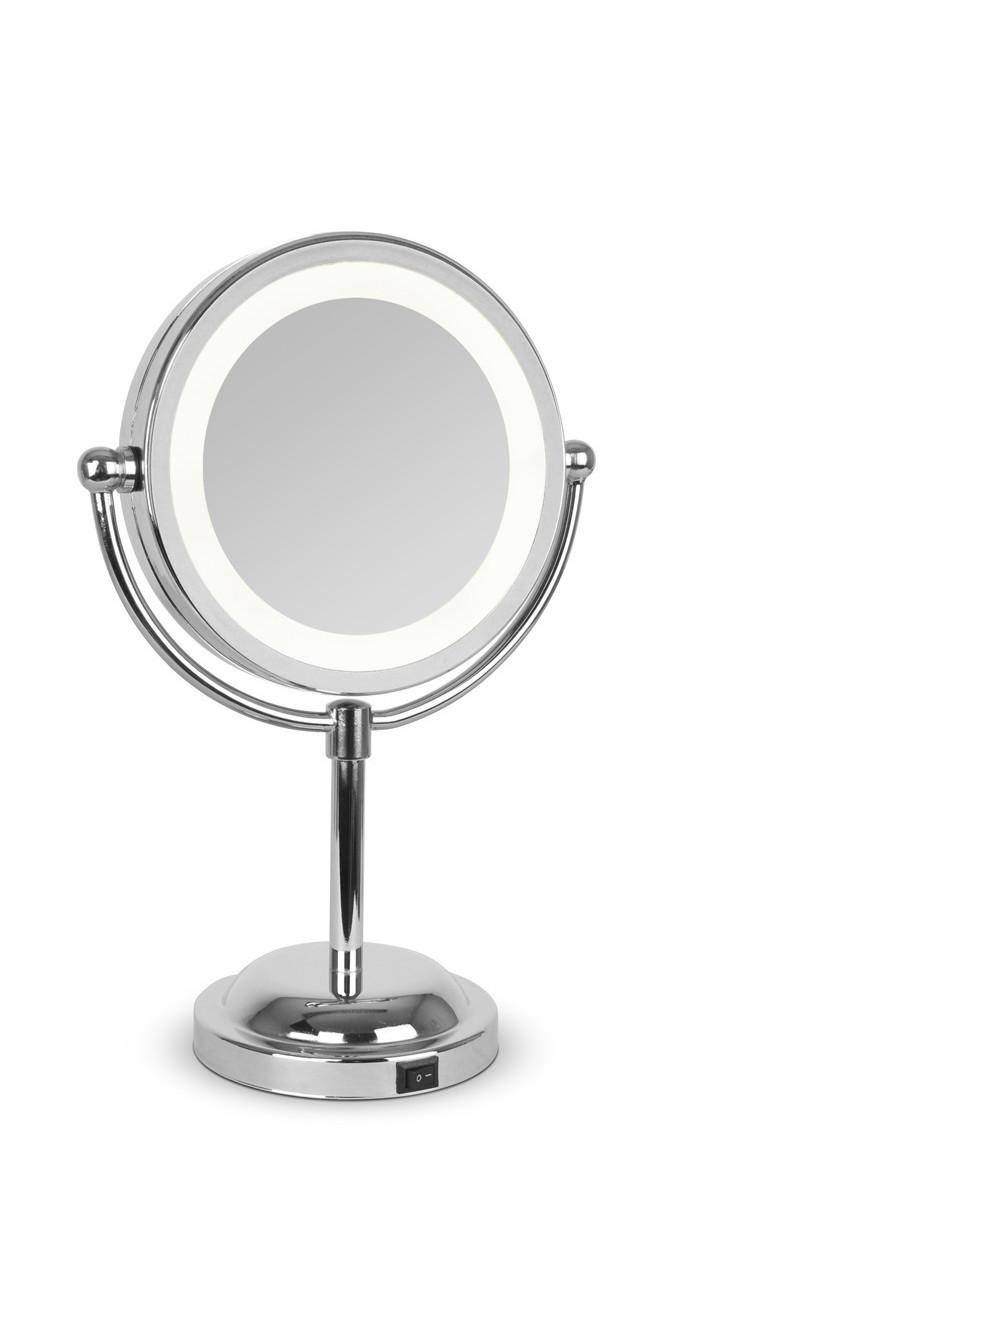 Small Round Light Up Free Standing Mirror | Valuelights In Small Free Standing Mirror (Image 16 of 20)